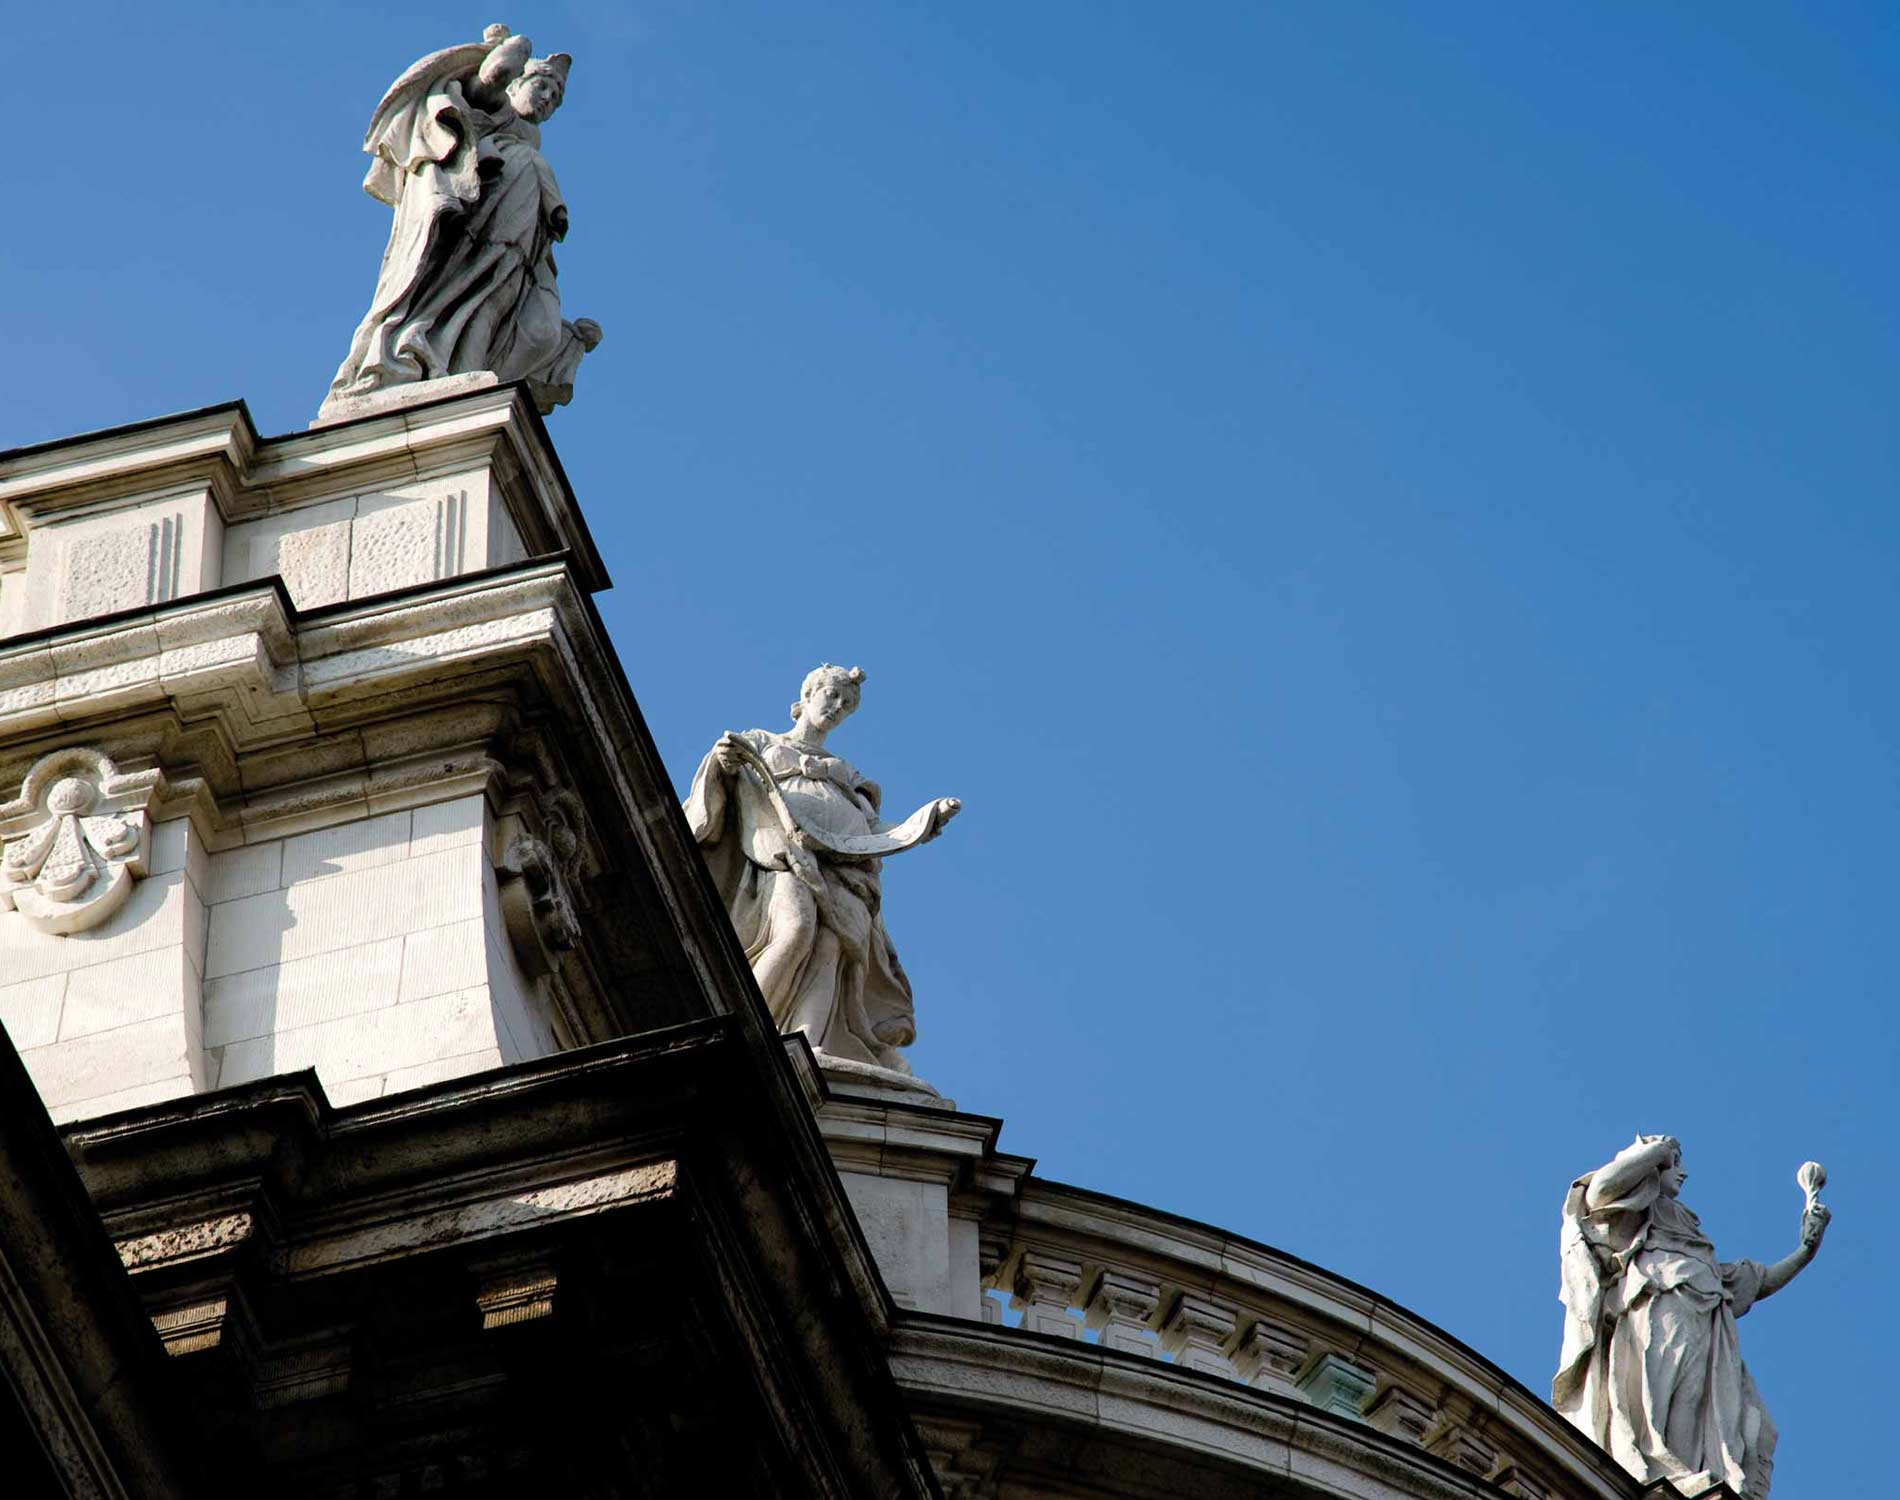 Statues on a building